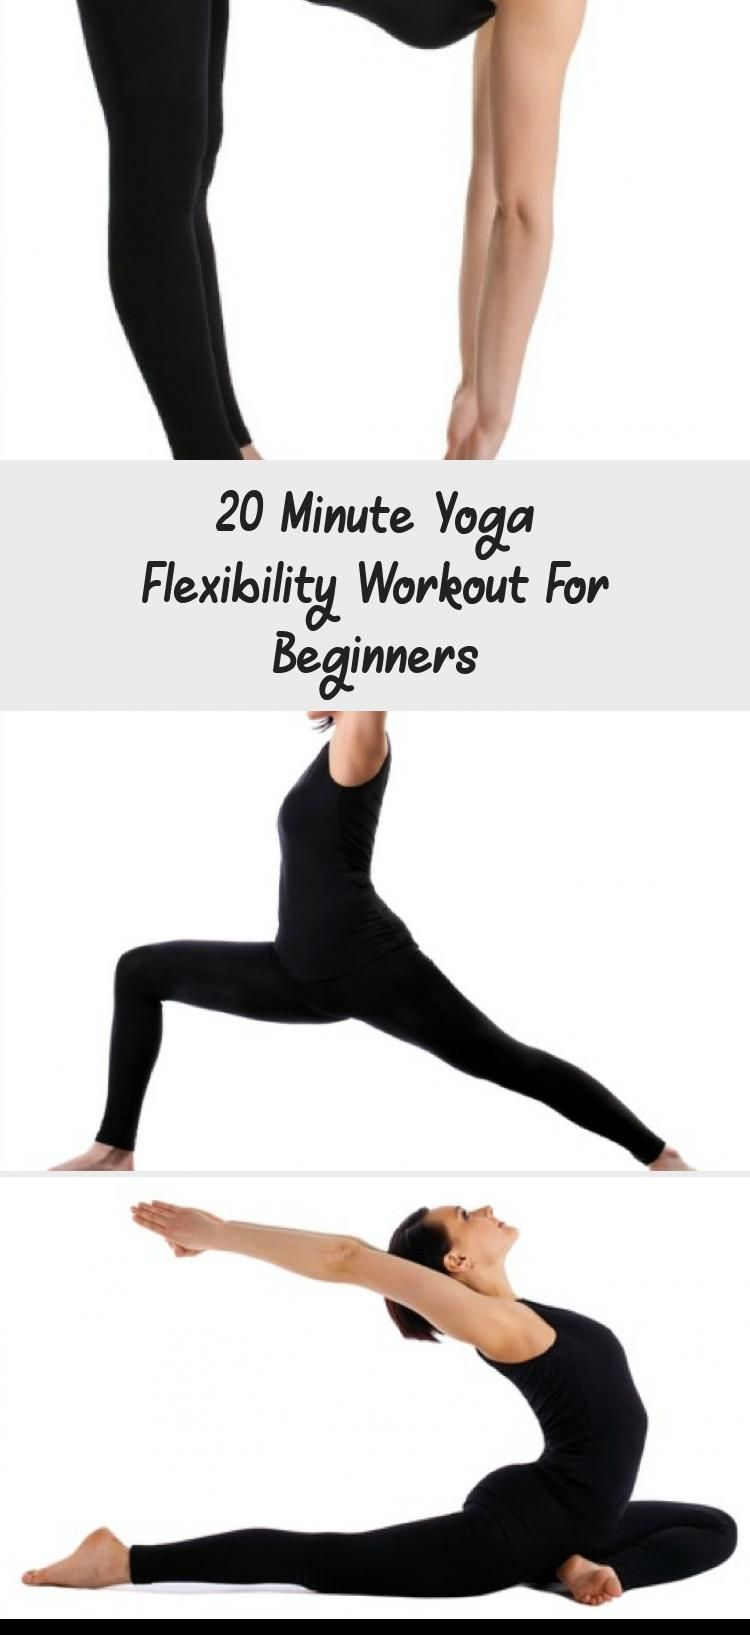 20 minute flexibility yoga workout for beginners!  This is a great way to burn f…